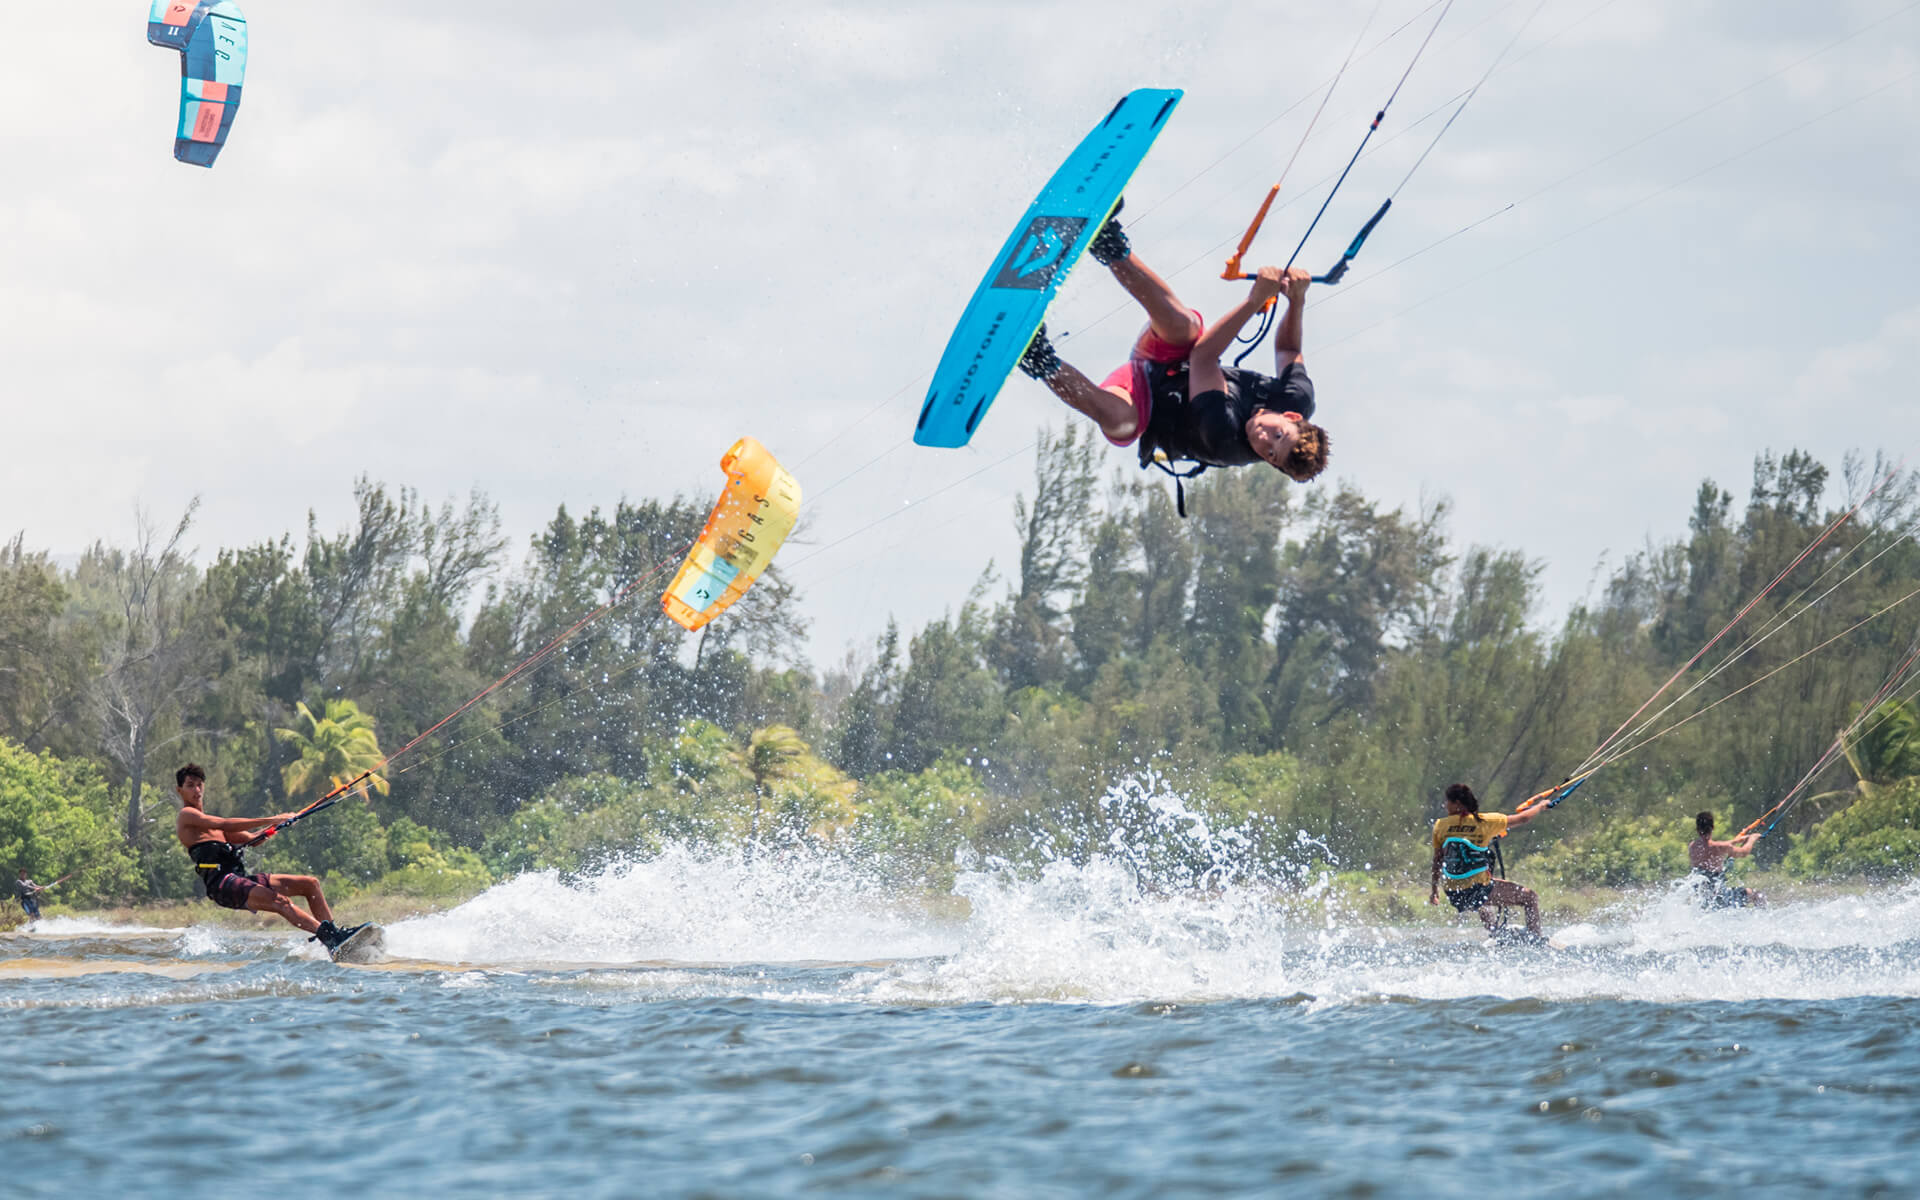 Duotone Kiteboarding Grom Search #2 Next Generation